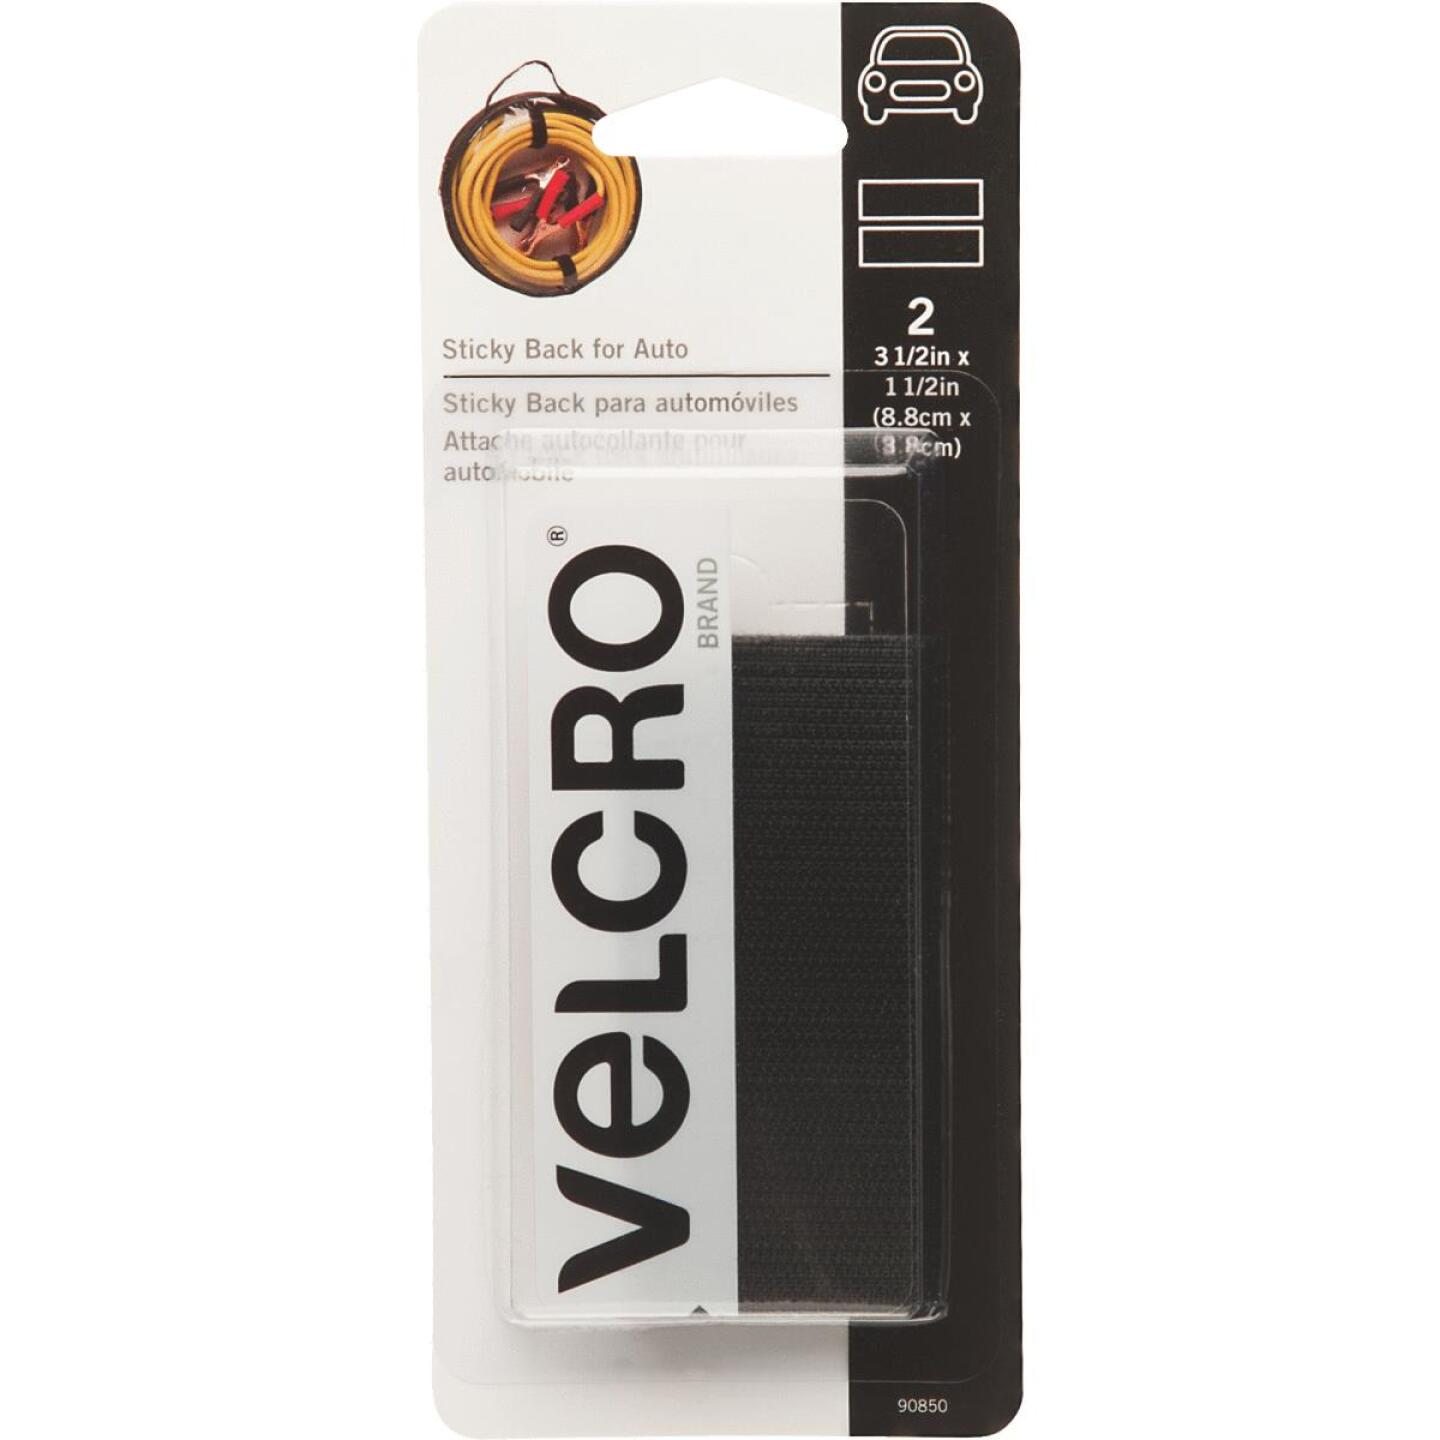 VELCRO Brand 1-1/2 In. x 3-1/2 In. Black Sticky Back For Auto Hook & Loop Strip (2 Ct.) Image 1